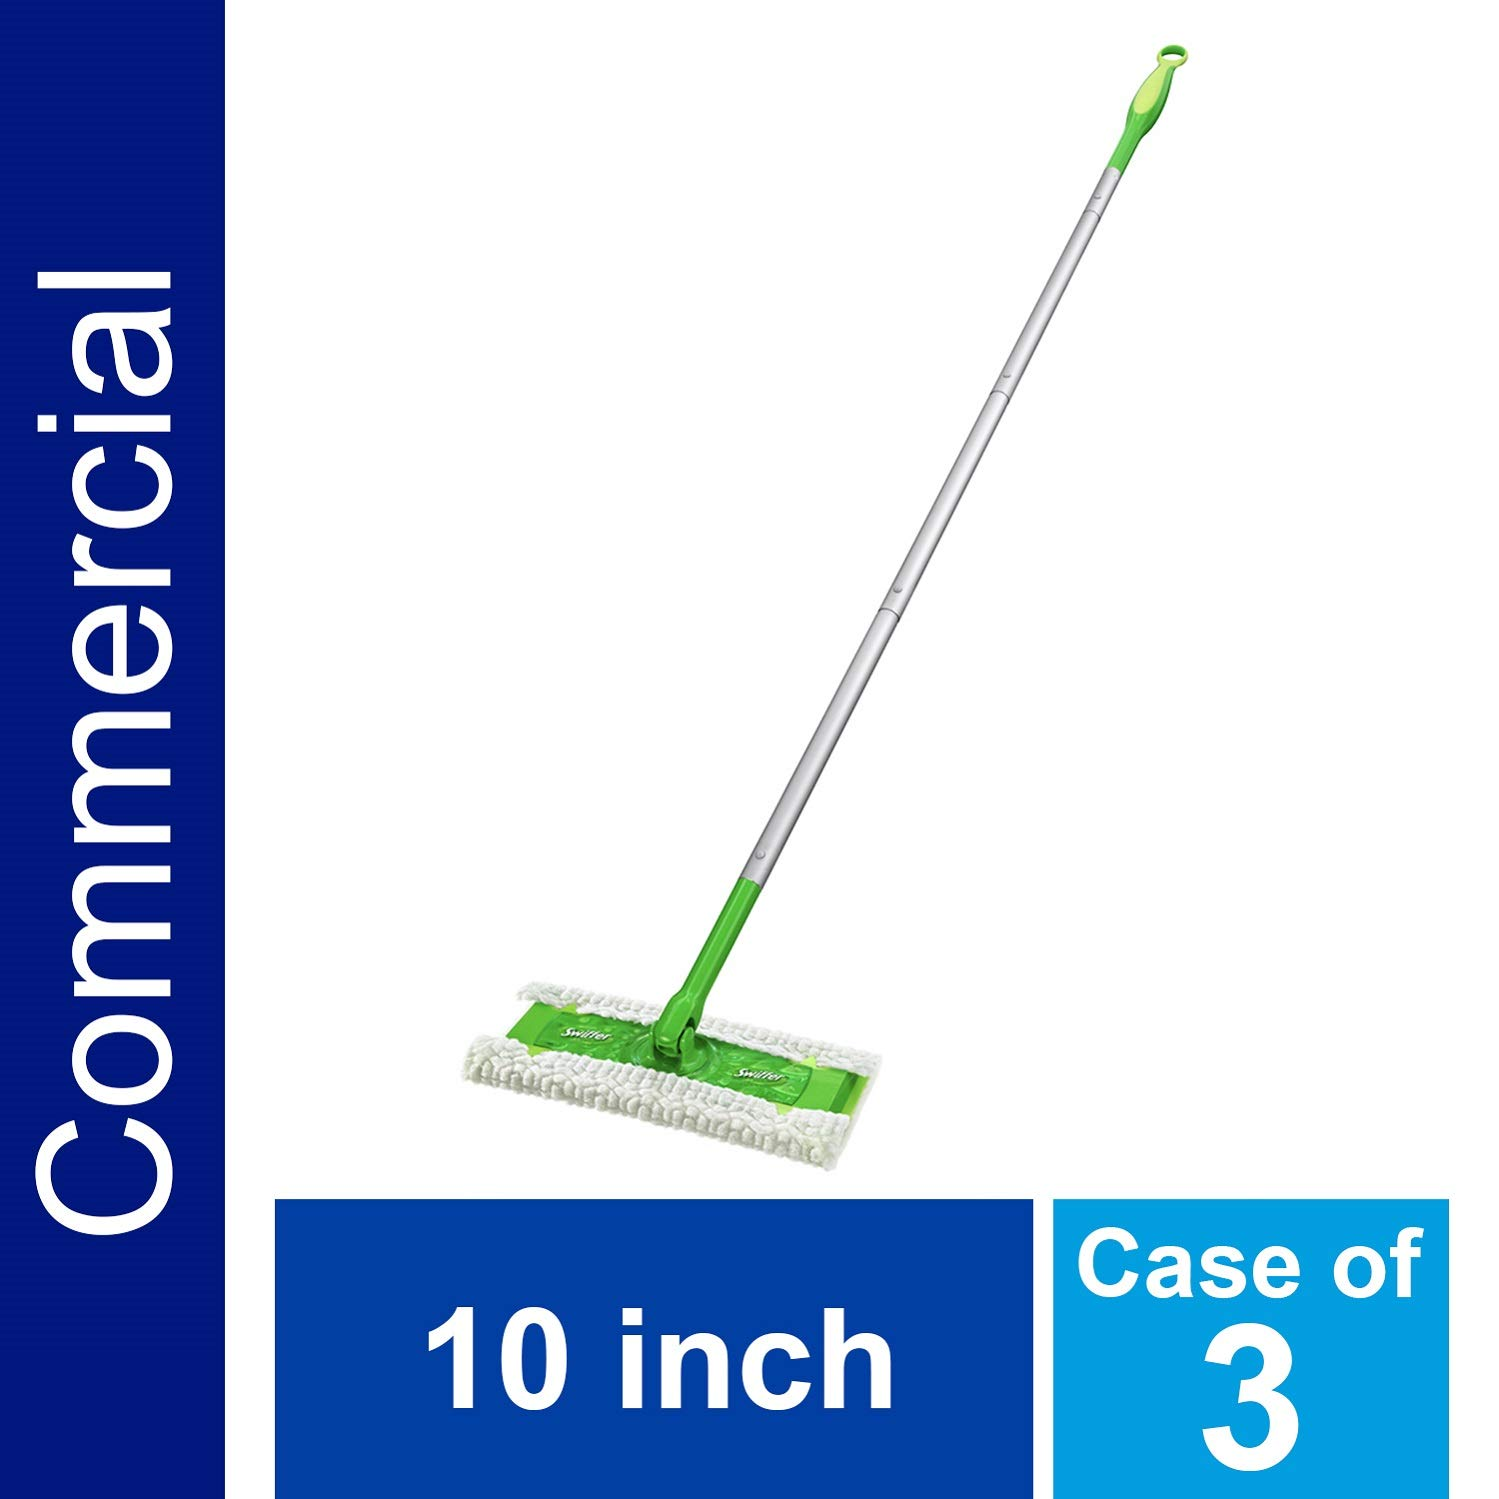 Heavy Duty Sweeper Mop by Swiffer Professional, 10-inch Wide Duster, Ideal for Industrial or Commercial use on Hardwood, Tile or for Hand Dusting, (Pack of 3)